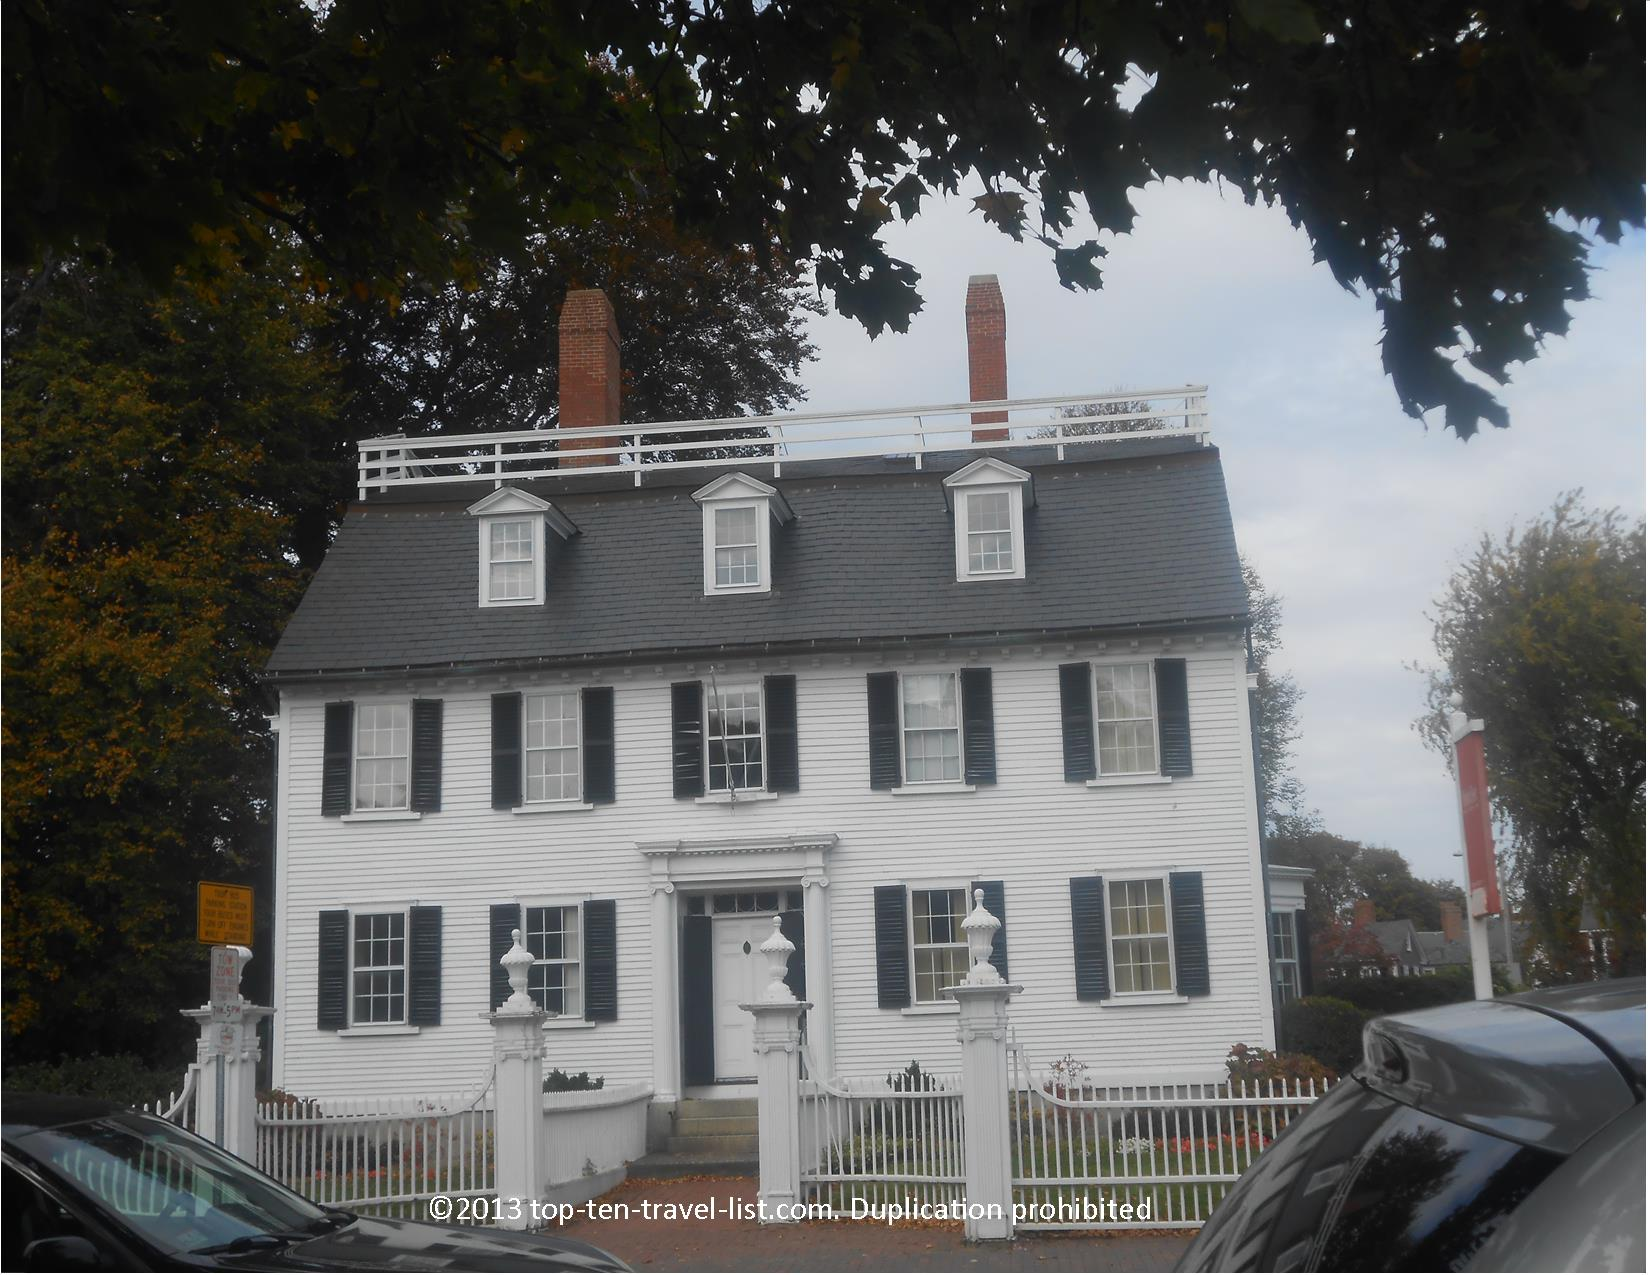 Allison's house from Hocus Pocus - Hocus Pocus filming locations in Salem, Massachusetts